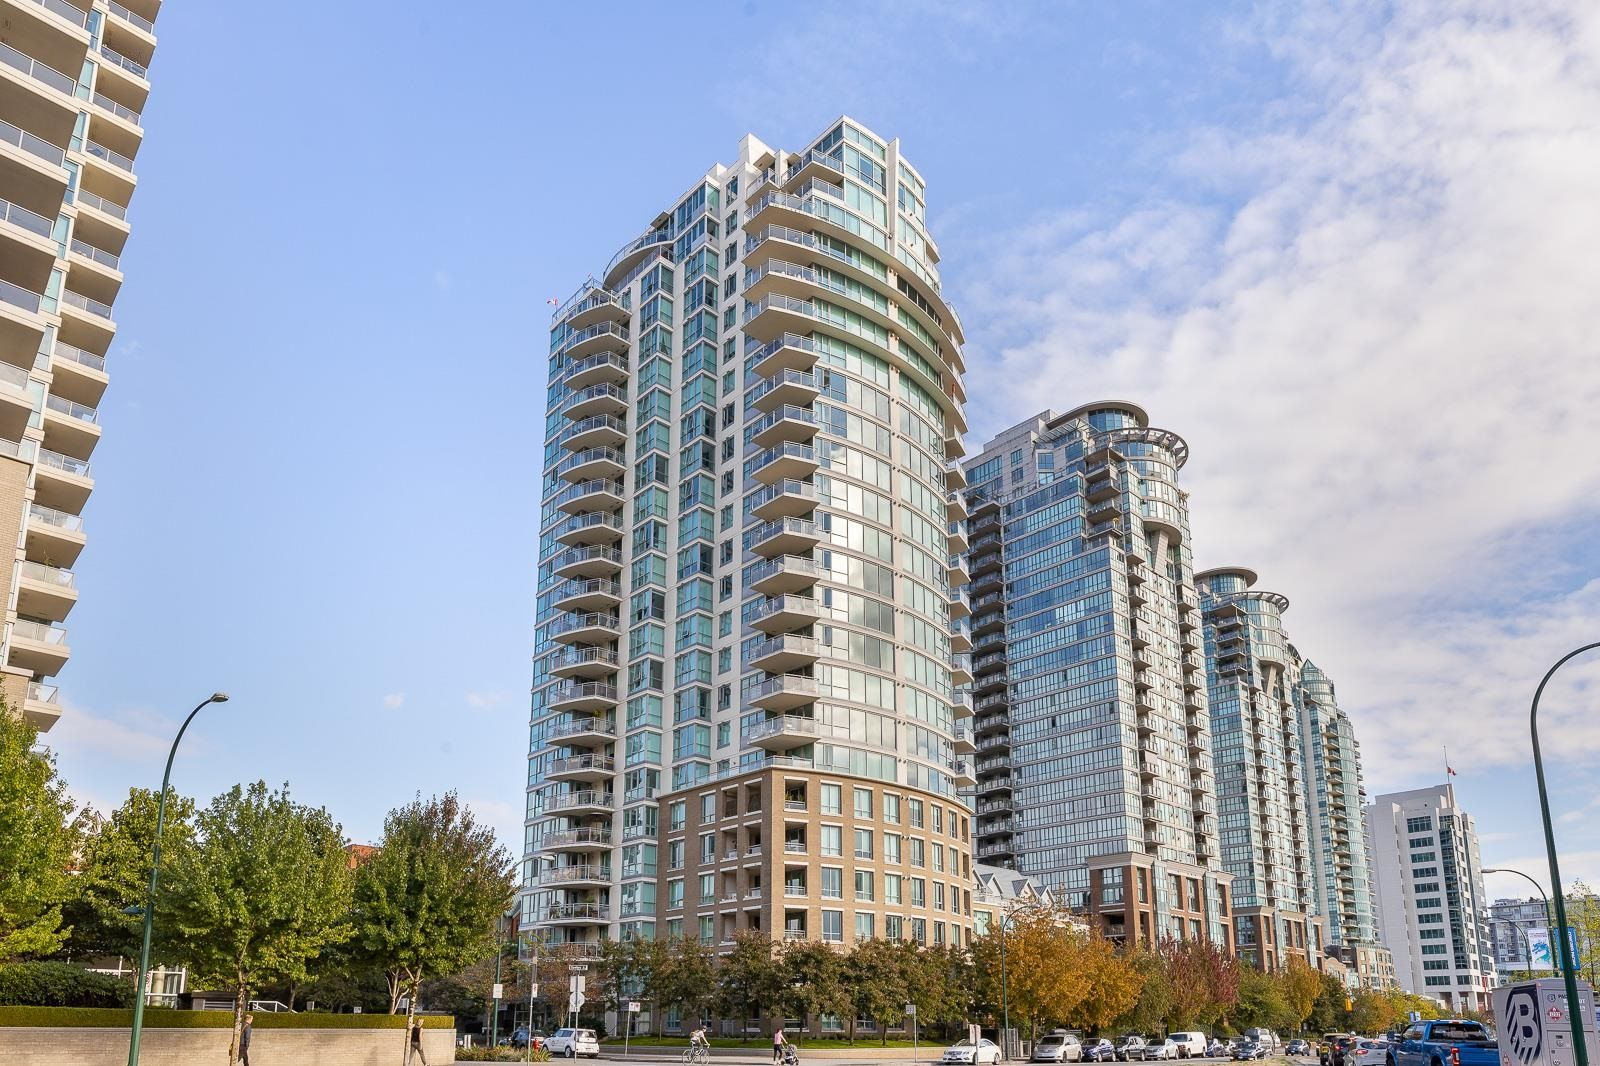 """Main Photo: 2101 120 MILROSS Avenue in Vancouver: Downtown VE Condo for sale in """"Brighton"""" (Vancouver East)  : MLS®# R2617891"""